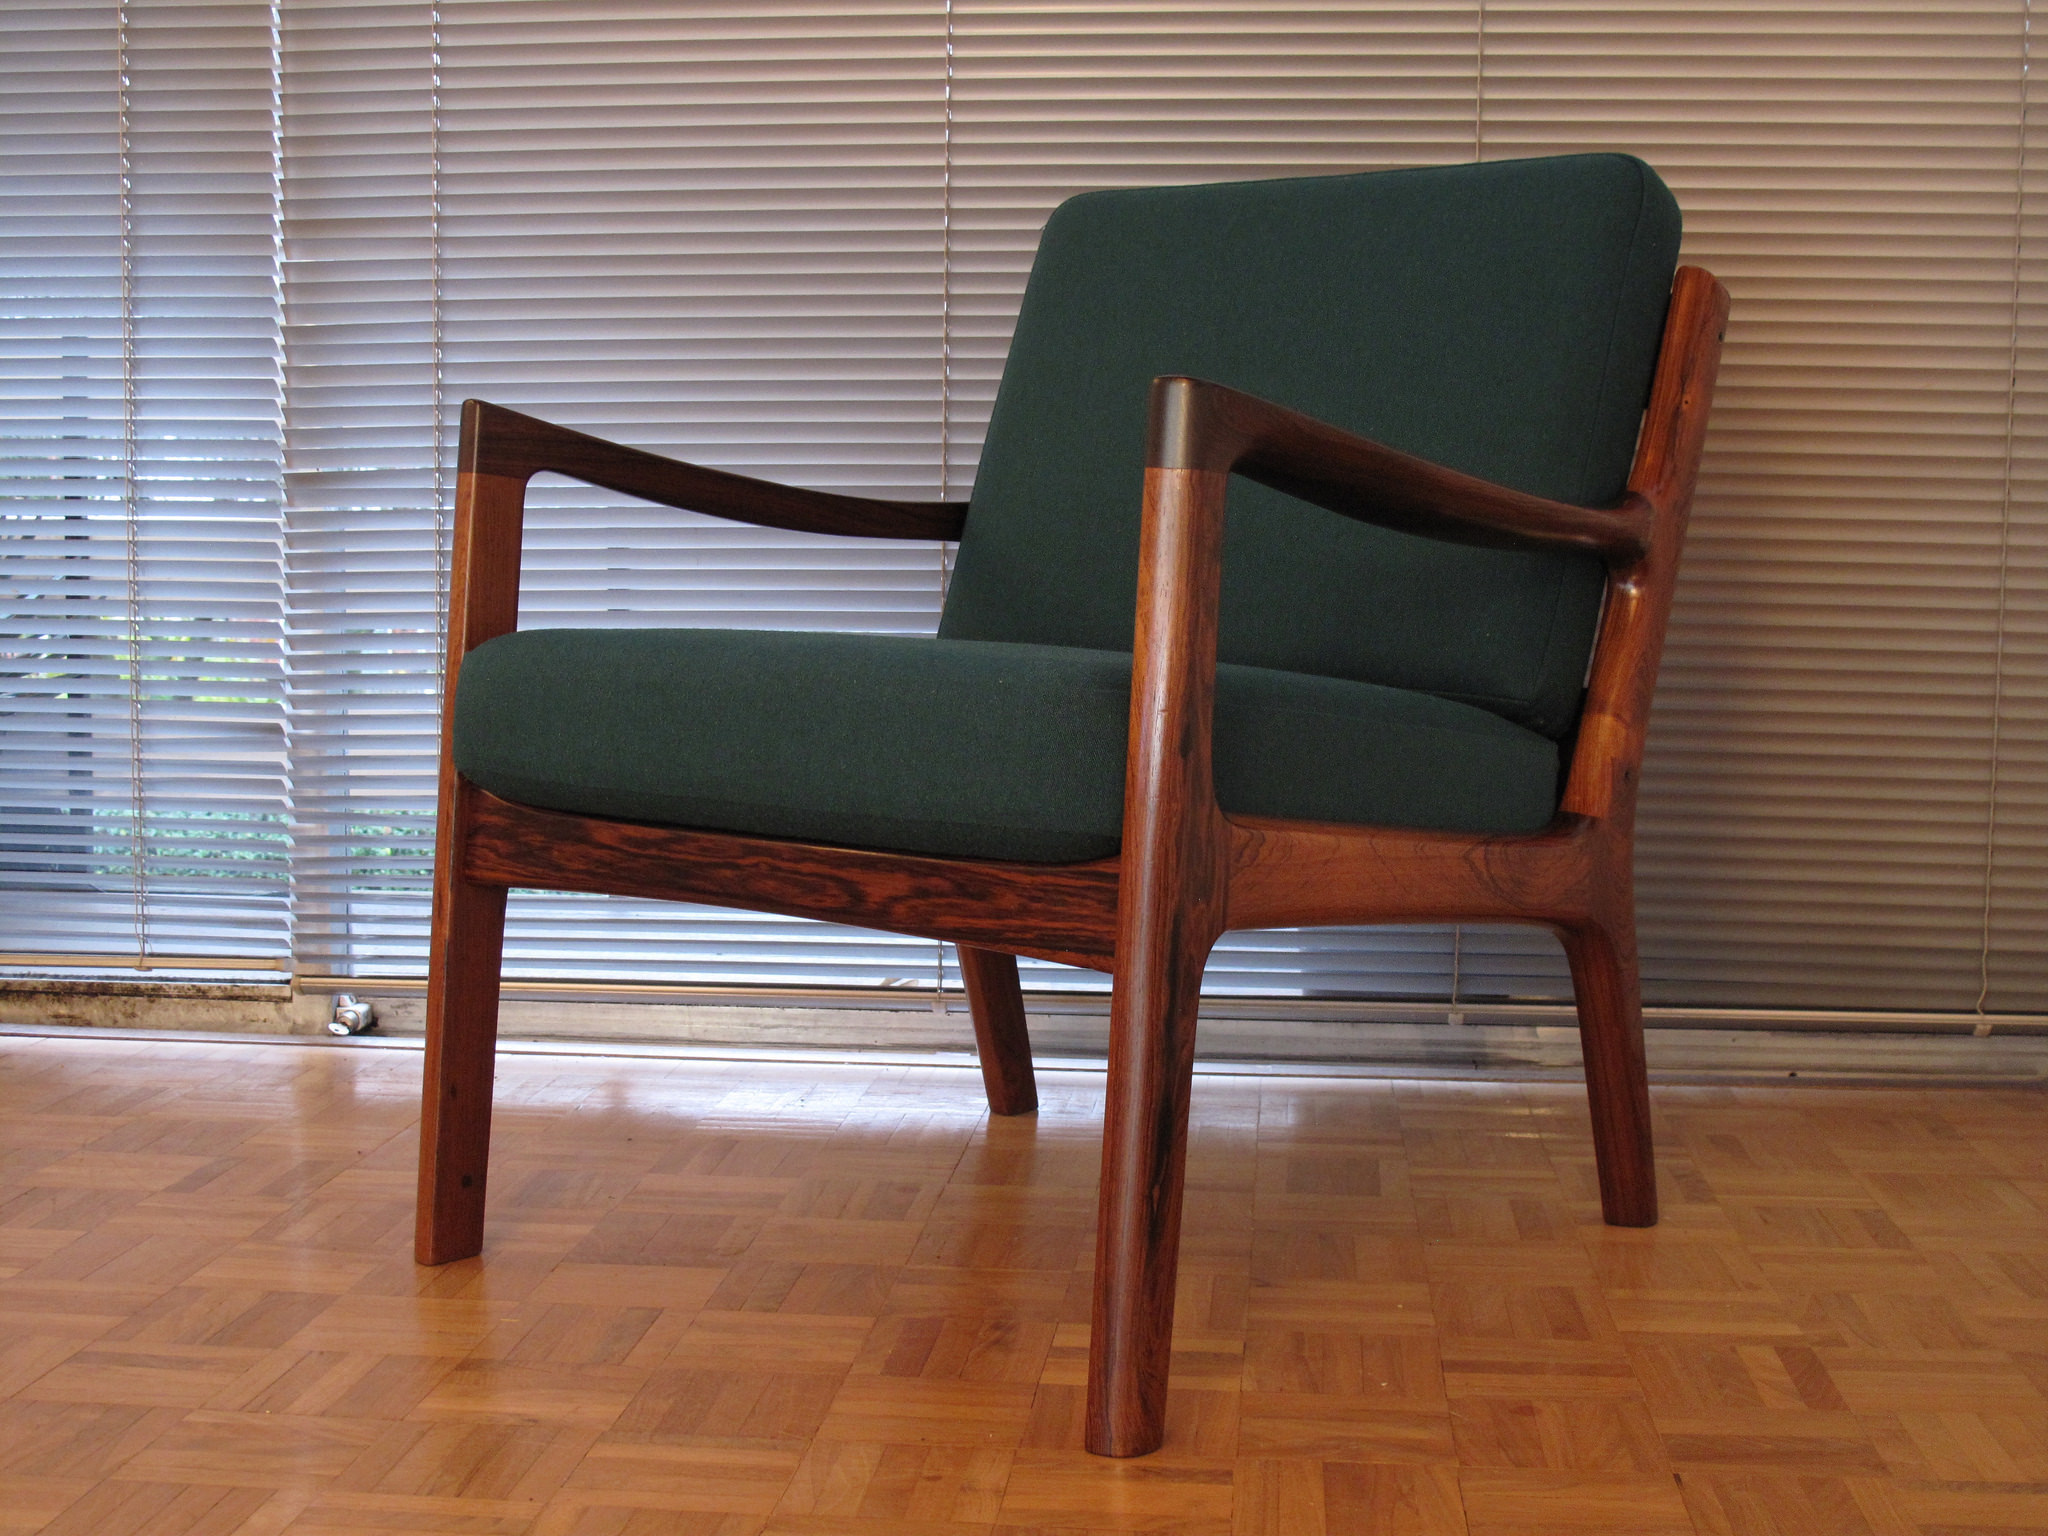 Wondrous Ole Wanscher Rosewood Senator Chair With Brand New Old Stock Cushions Gmtry Best Dining Table And Chair Ideas Images Gmtryco